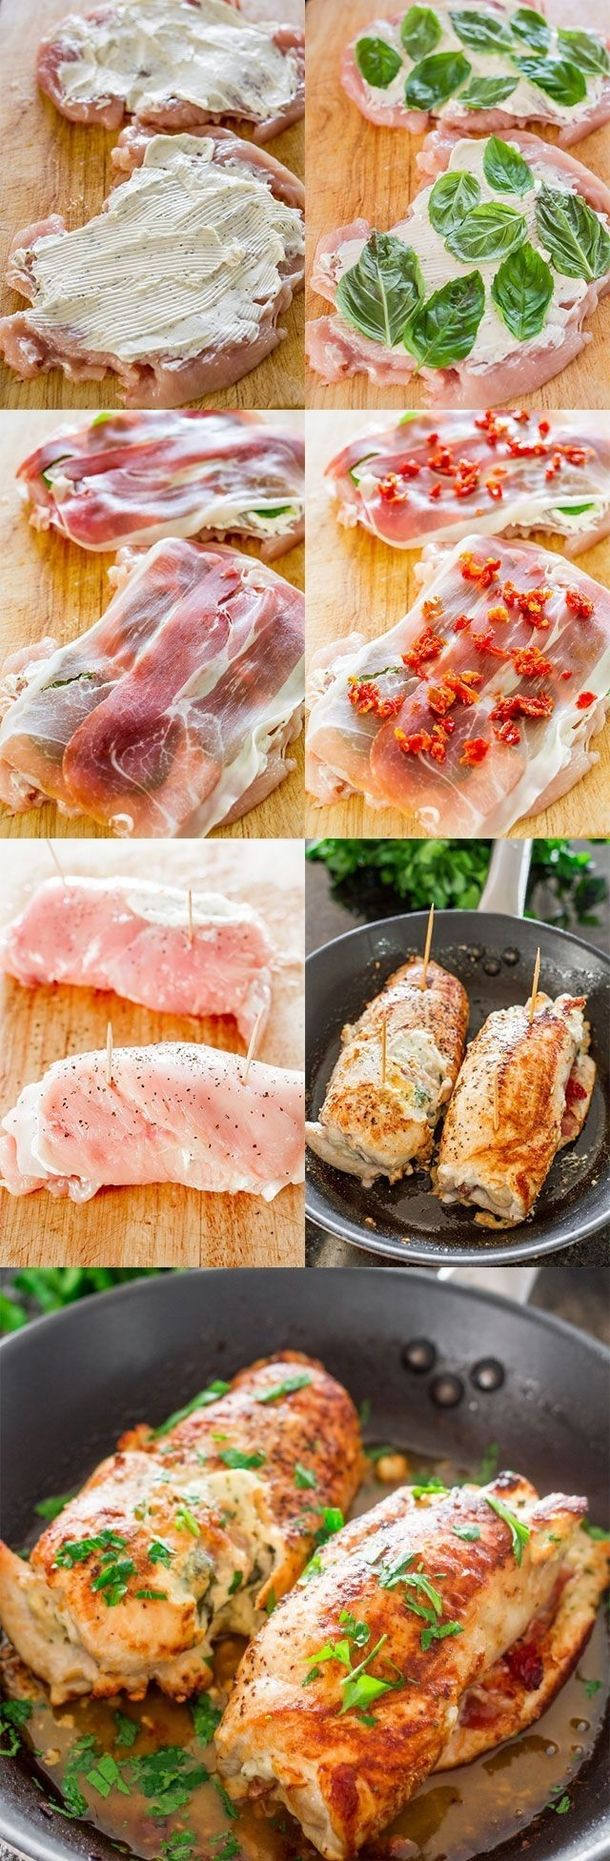 Here we have gathered some mouth watering bacon wrapped chicken recipes that you will love!